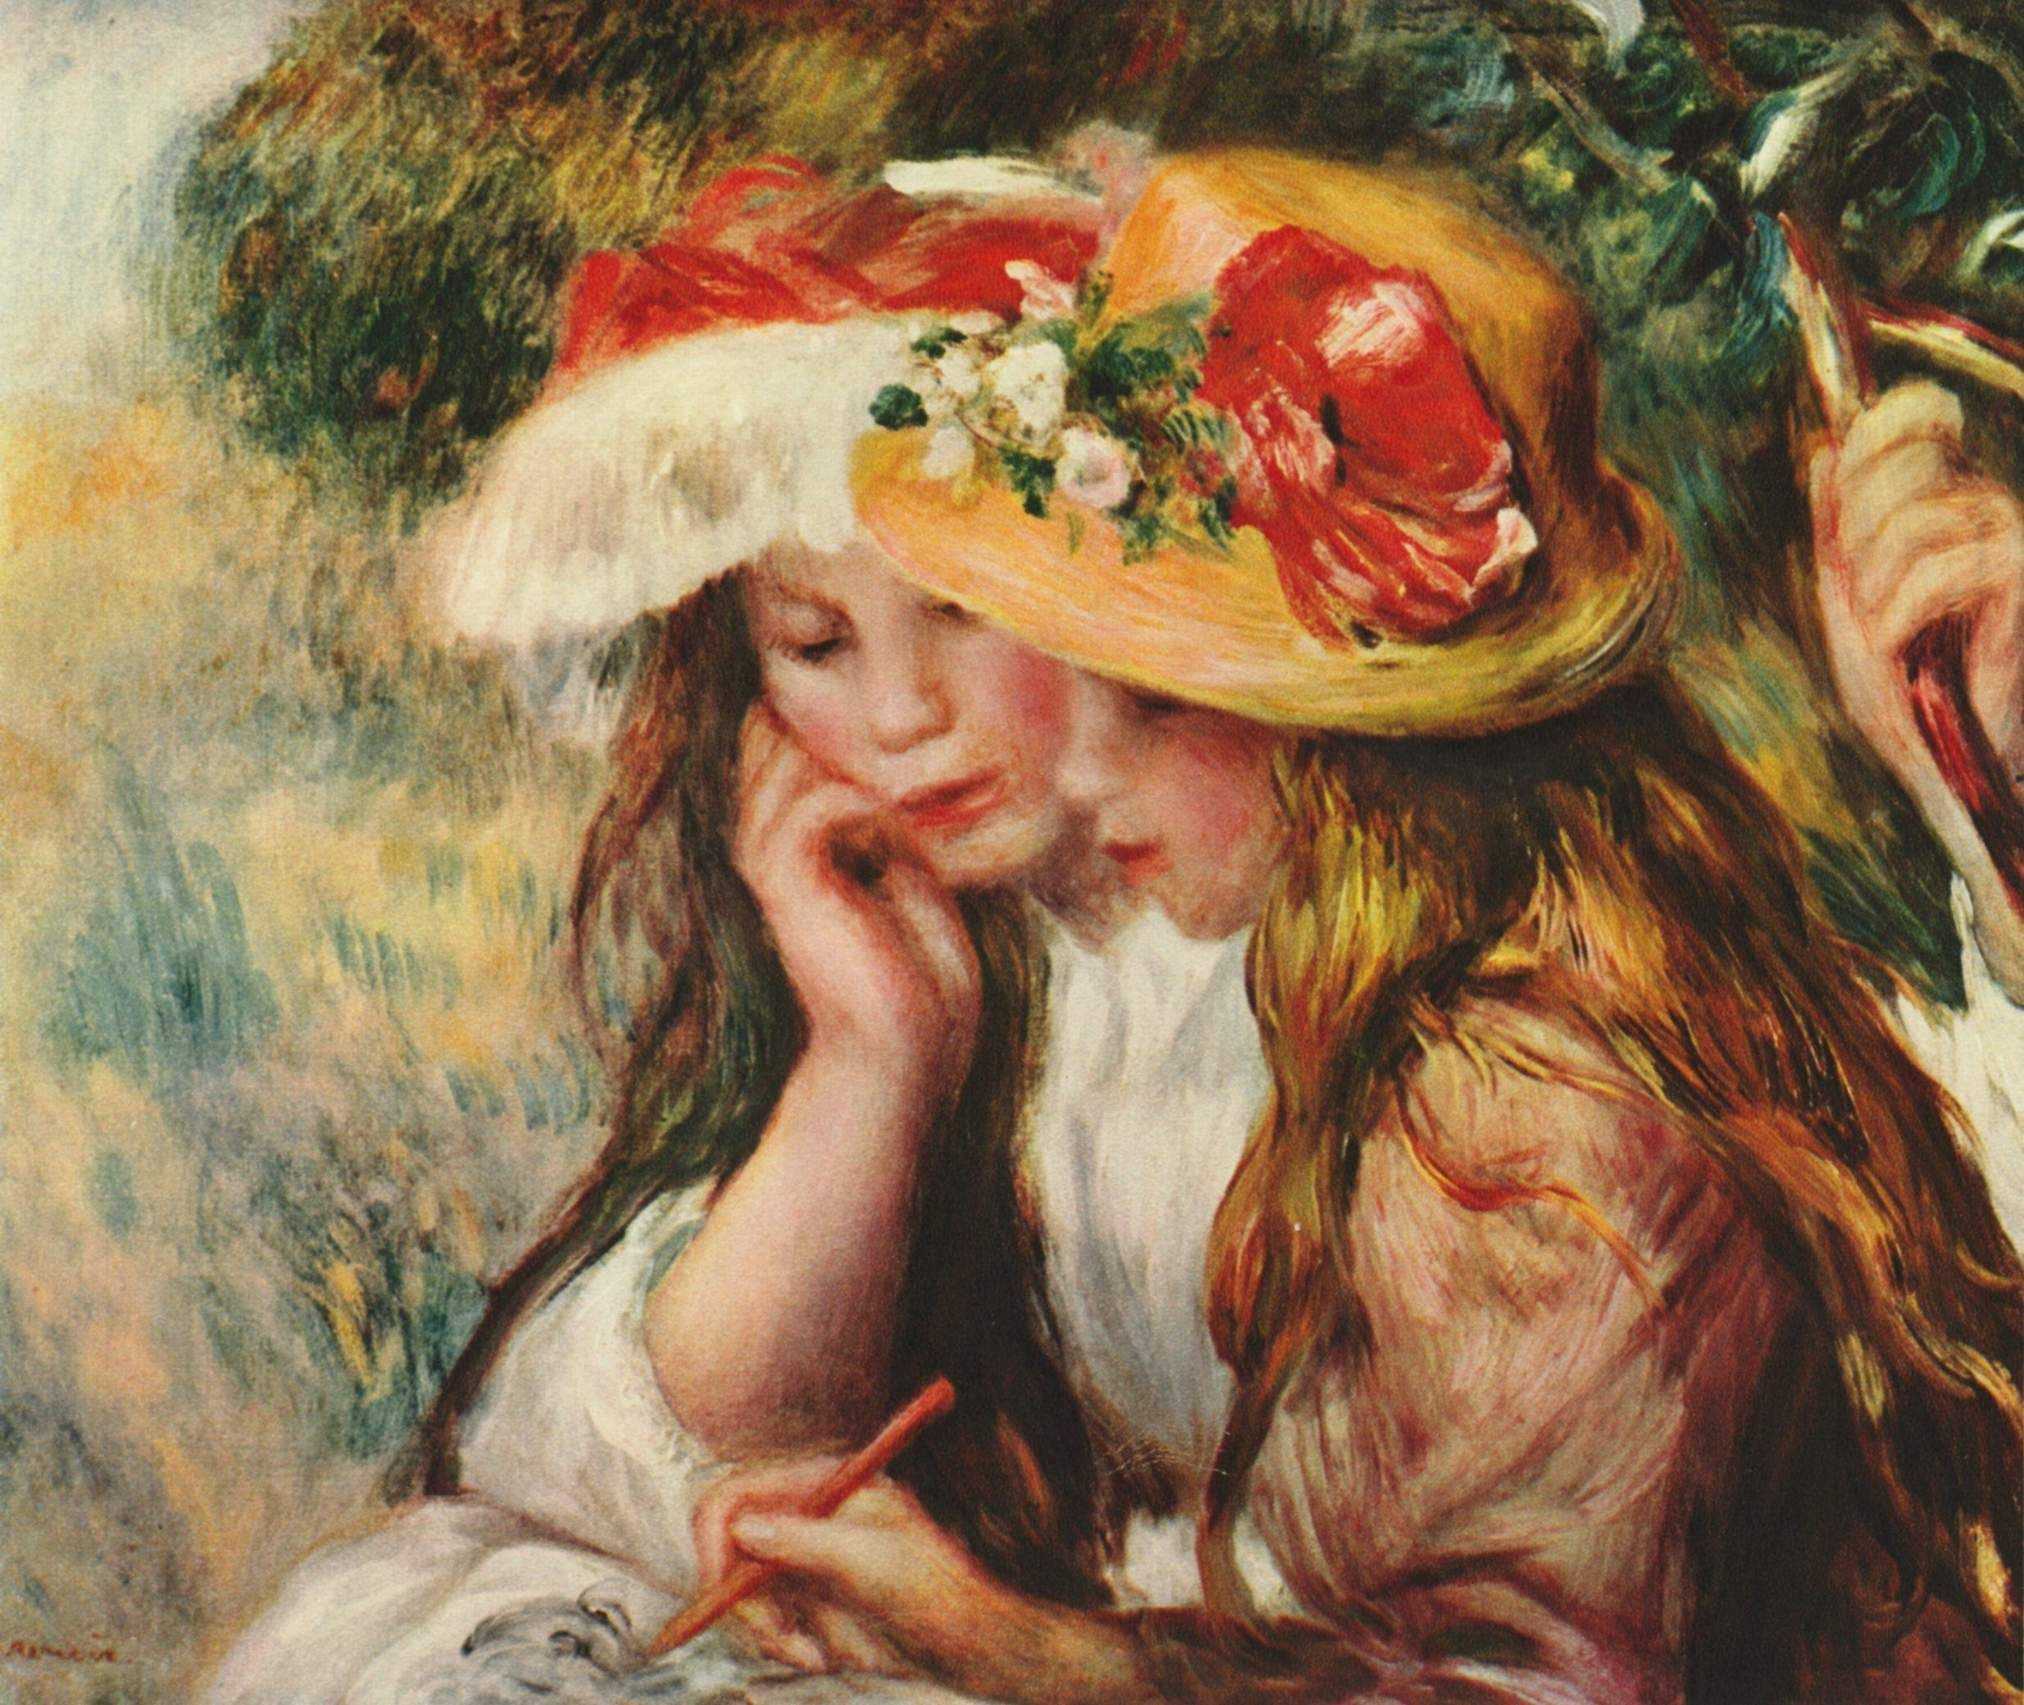 impressionist paintings | Impressionist, Post-Impressionist Art: A Continuous French exposé at ...